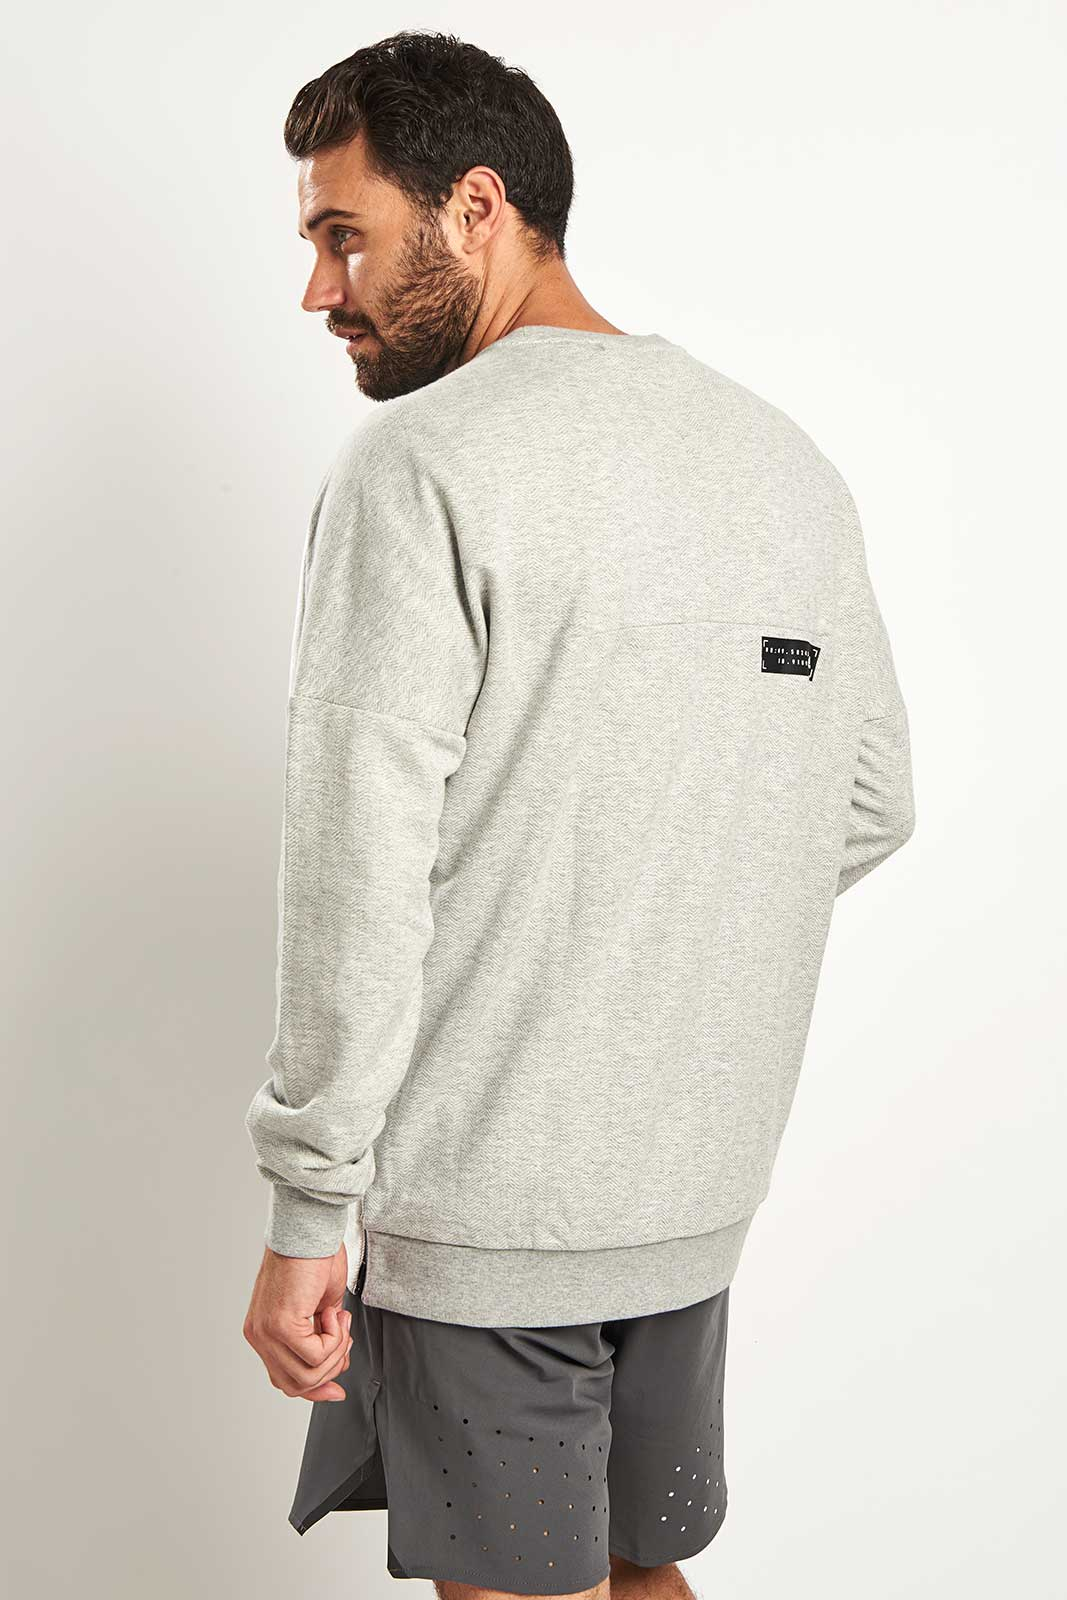 ADIDAS Athletics Crewneck Sweatshirt | Grey image 2 - The Sports Edit